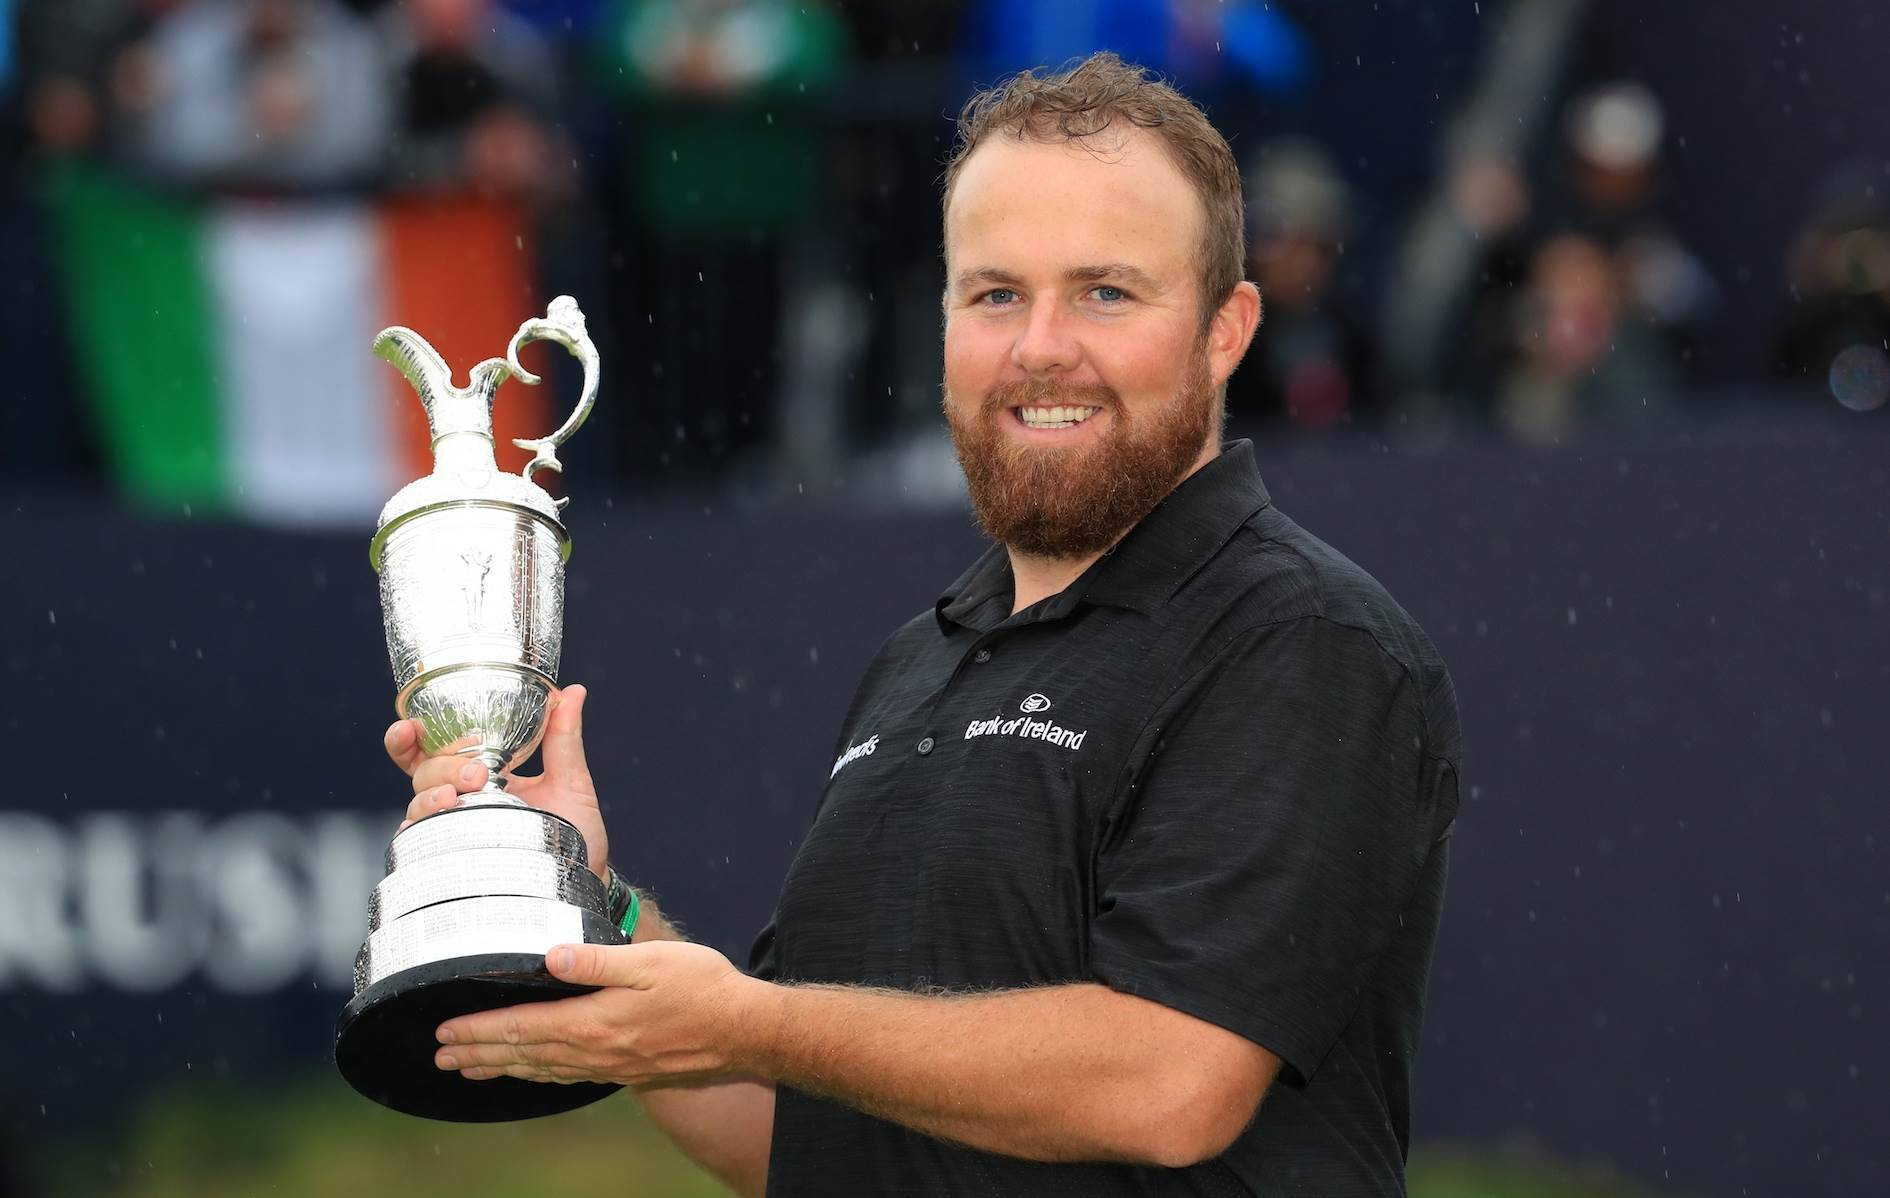 PORTRUSH, NORTHERN IRELAND - JULY 21: Open Champion Shane Lowry of Ireland celebrates with the Claret Jug on the 18th green during the final round of the 148th Open Championship held on the Dunluce Links at Royal Portrush Golf Club on July 21, 2019 in Portrush, United Kingdom. (Photo by Andrew Redington/Getty Images)